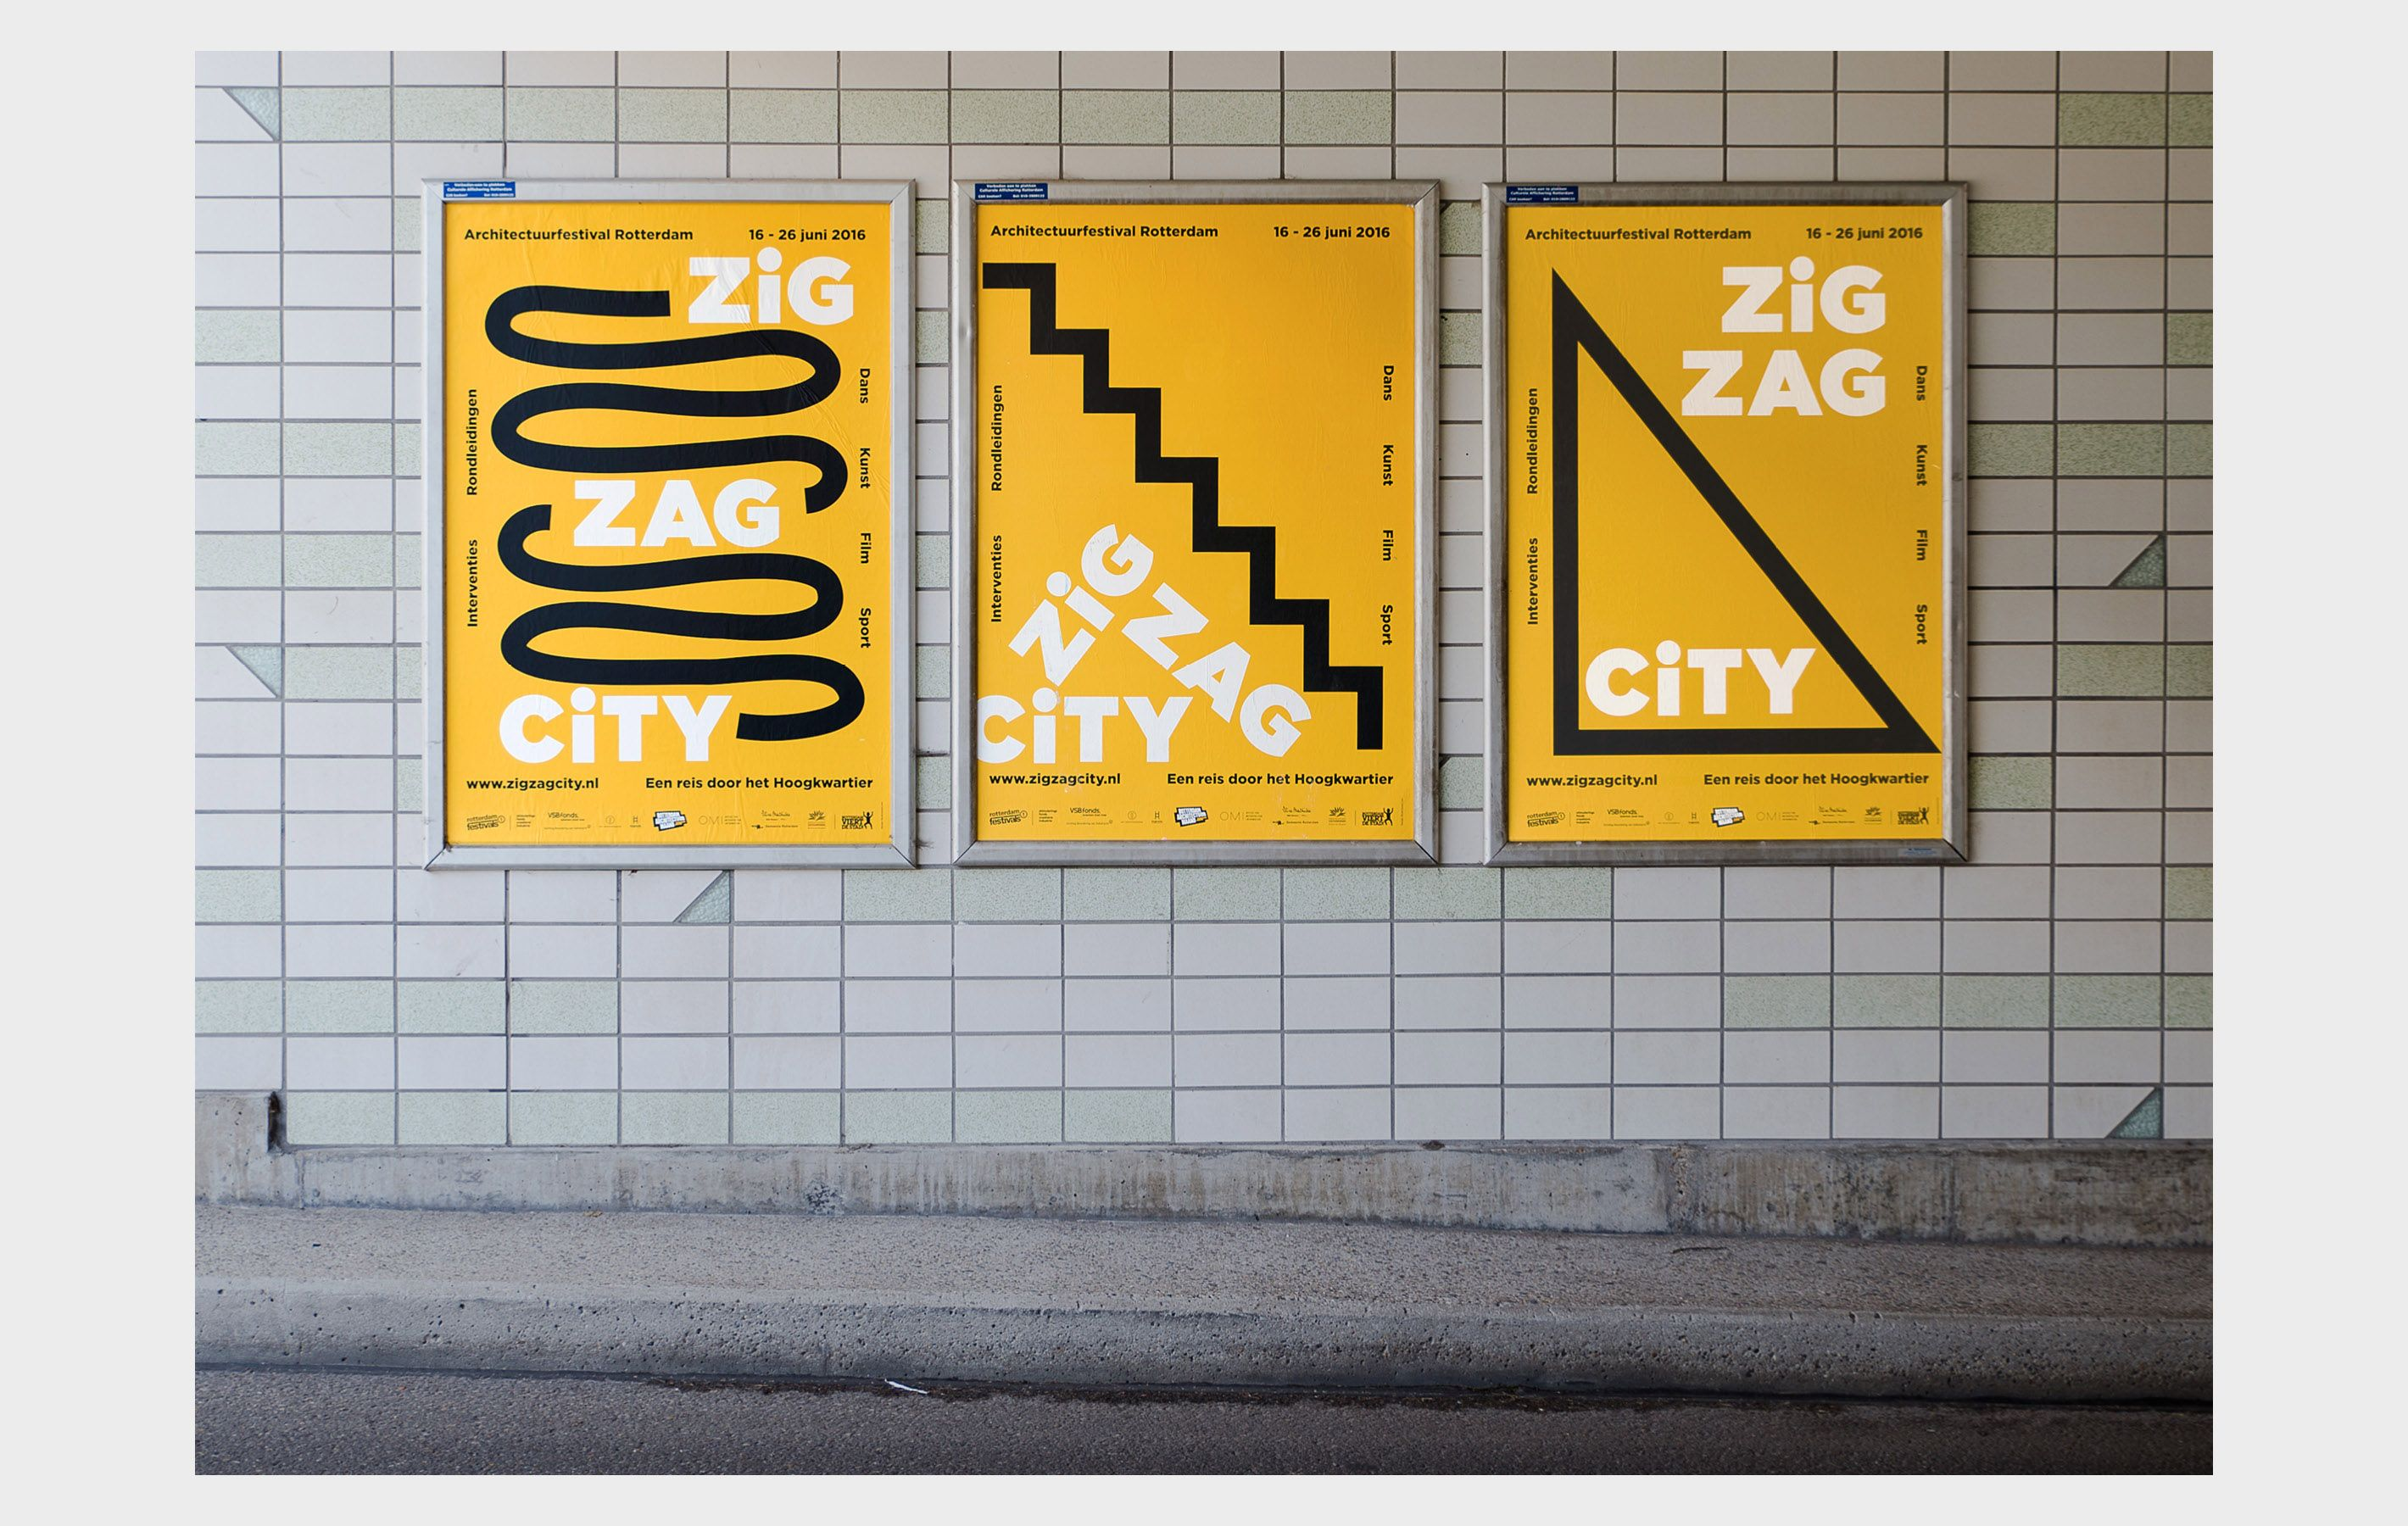 The studio got commissioned to create a new identity for rotterdam